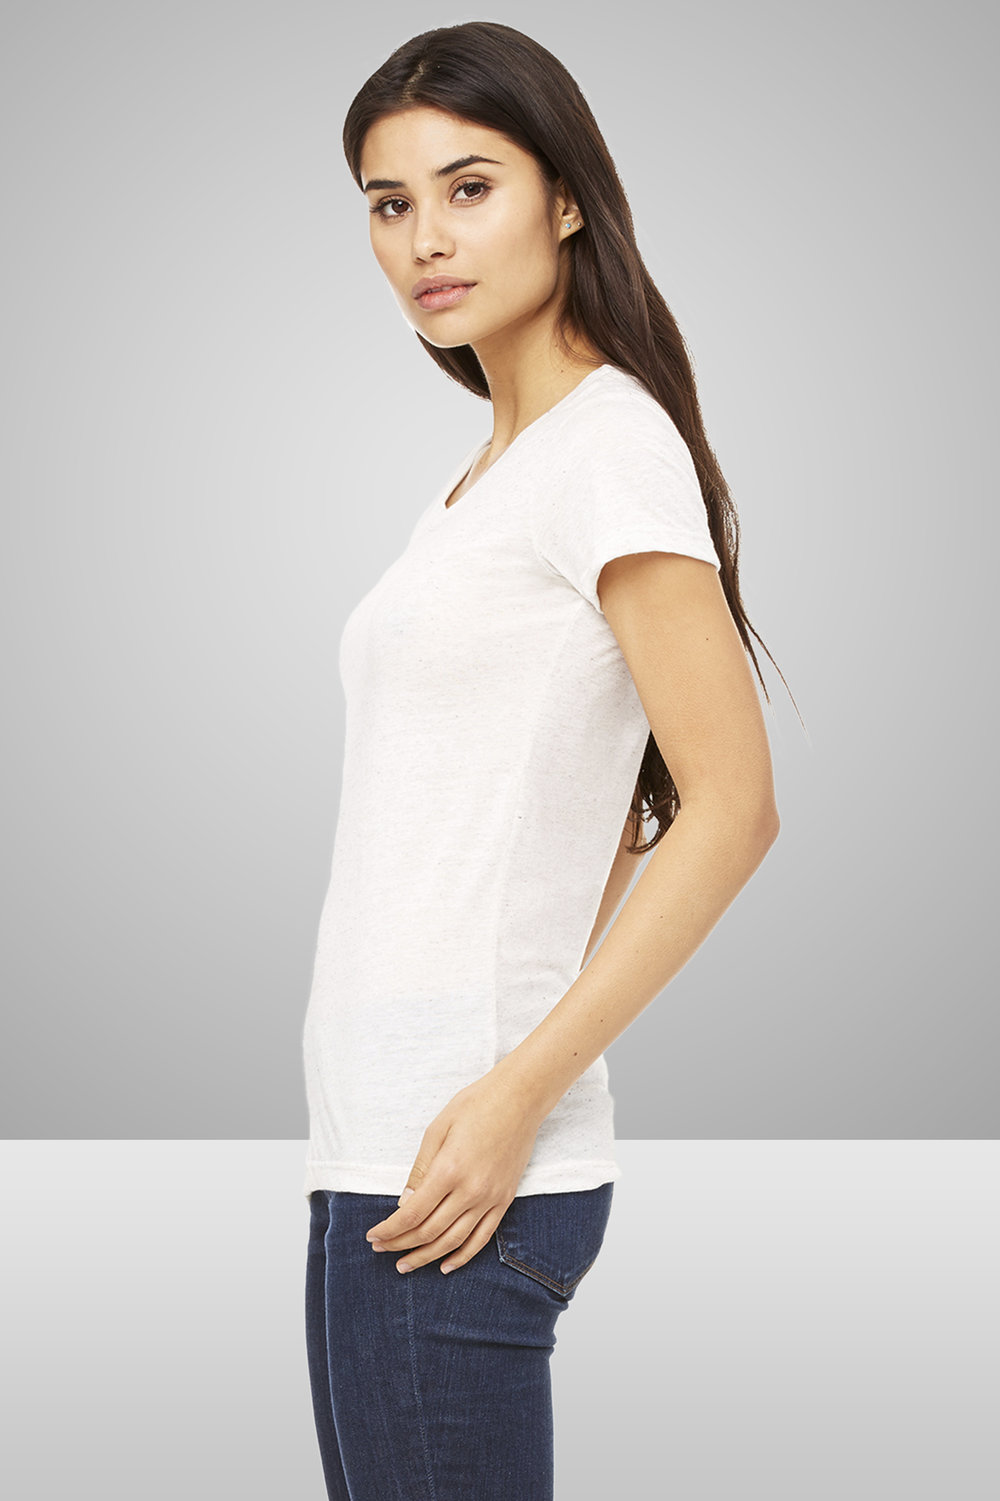 Bella+Canvas Ladies' Triblend Short-Sleeve T-Shirt    $12.09 each for 25 items one color front or back